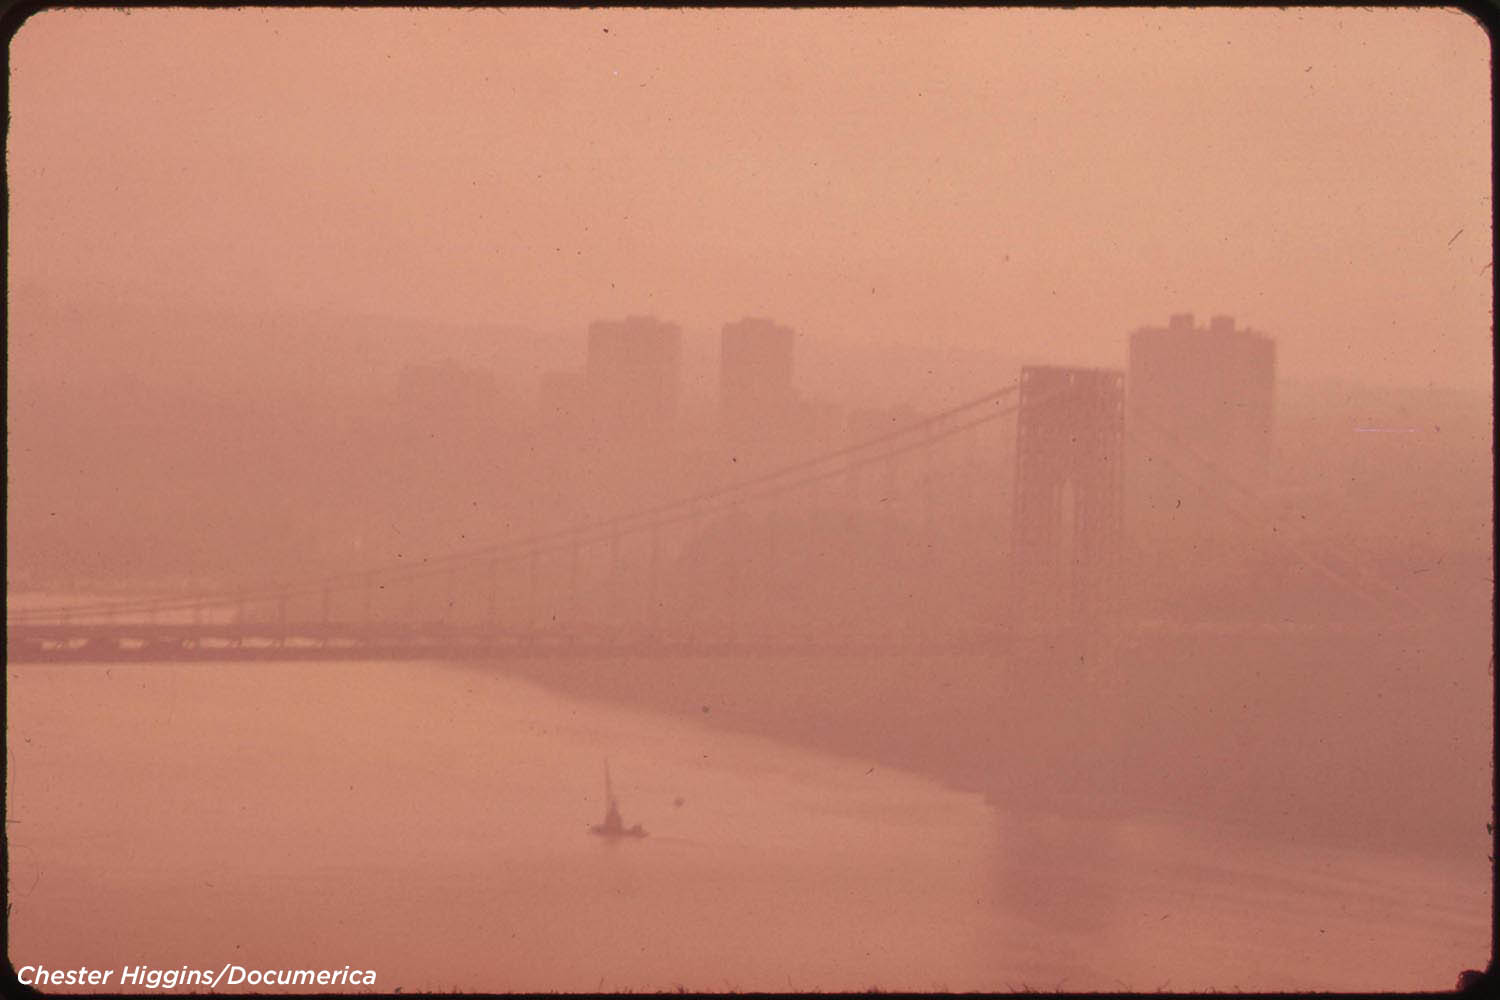 NYC 1970s pollution